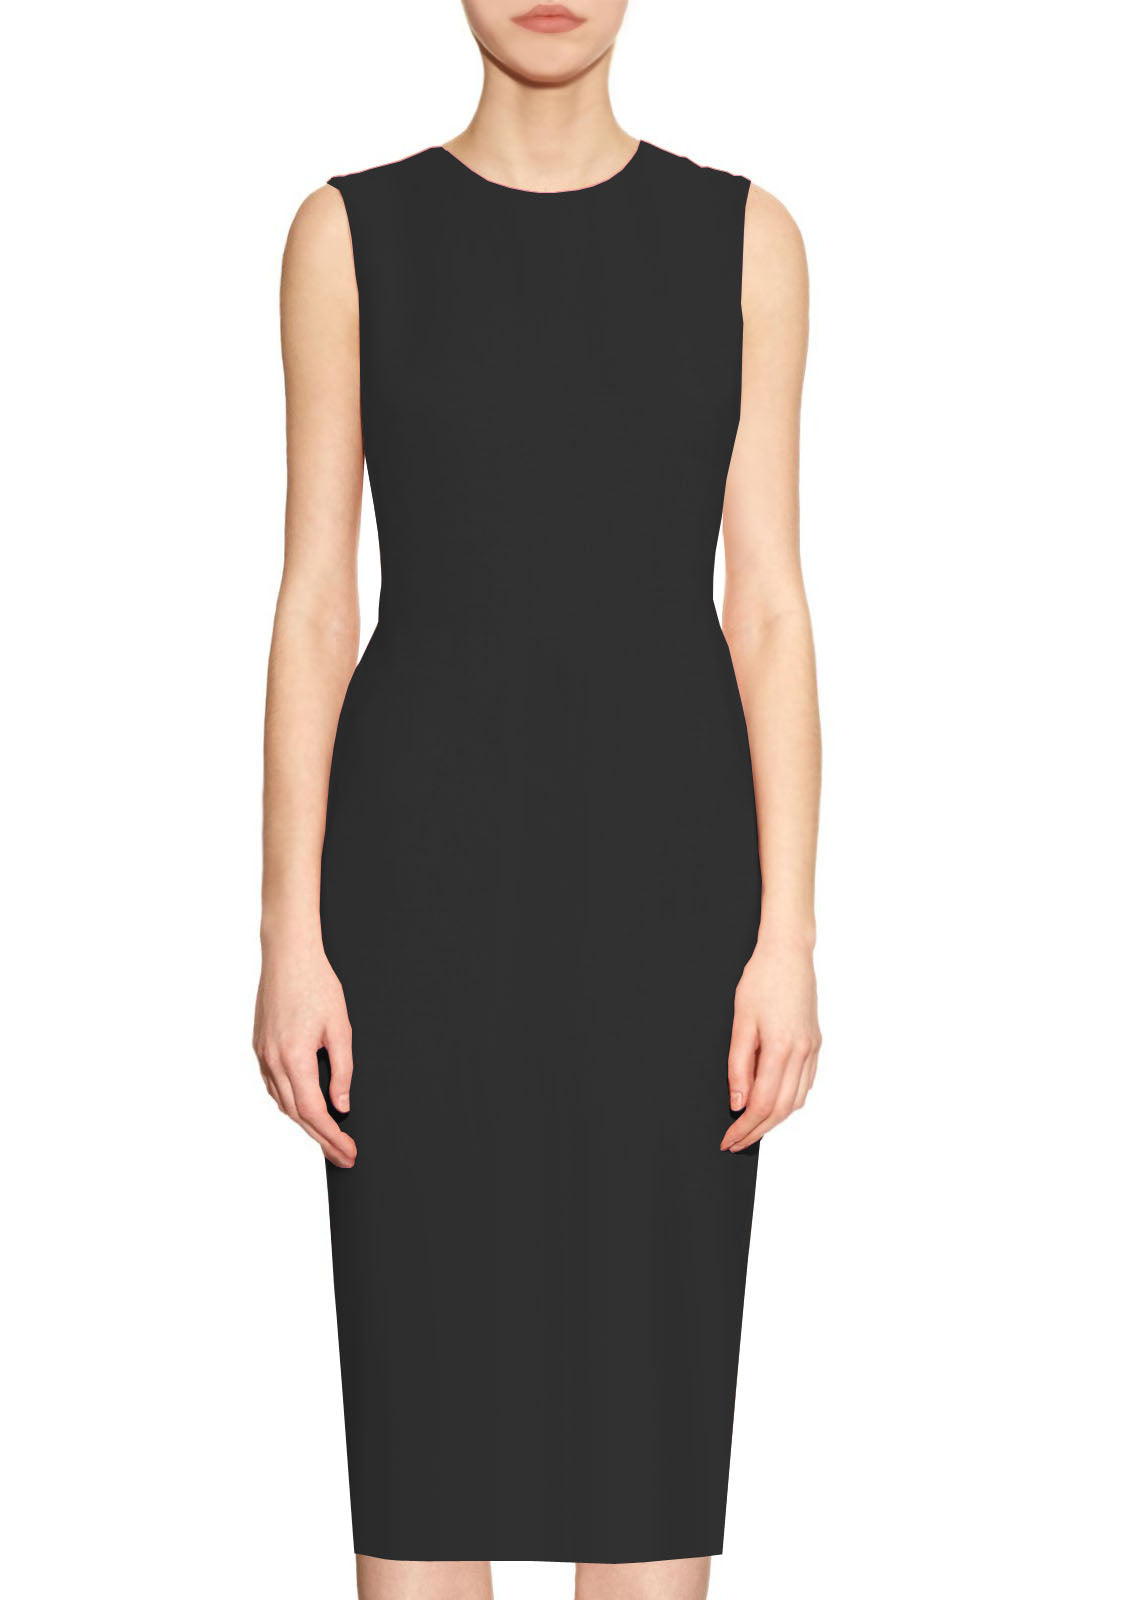 Krew Black Basic Round Neck Sheath Dress